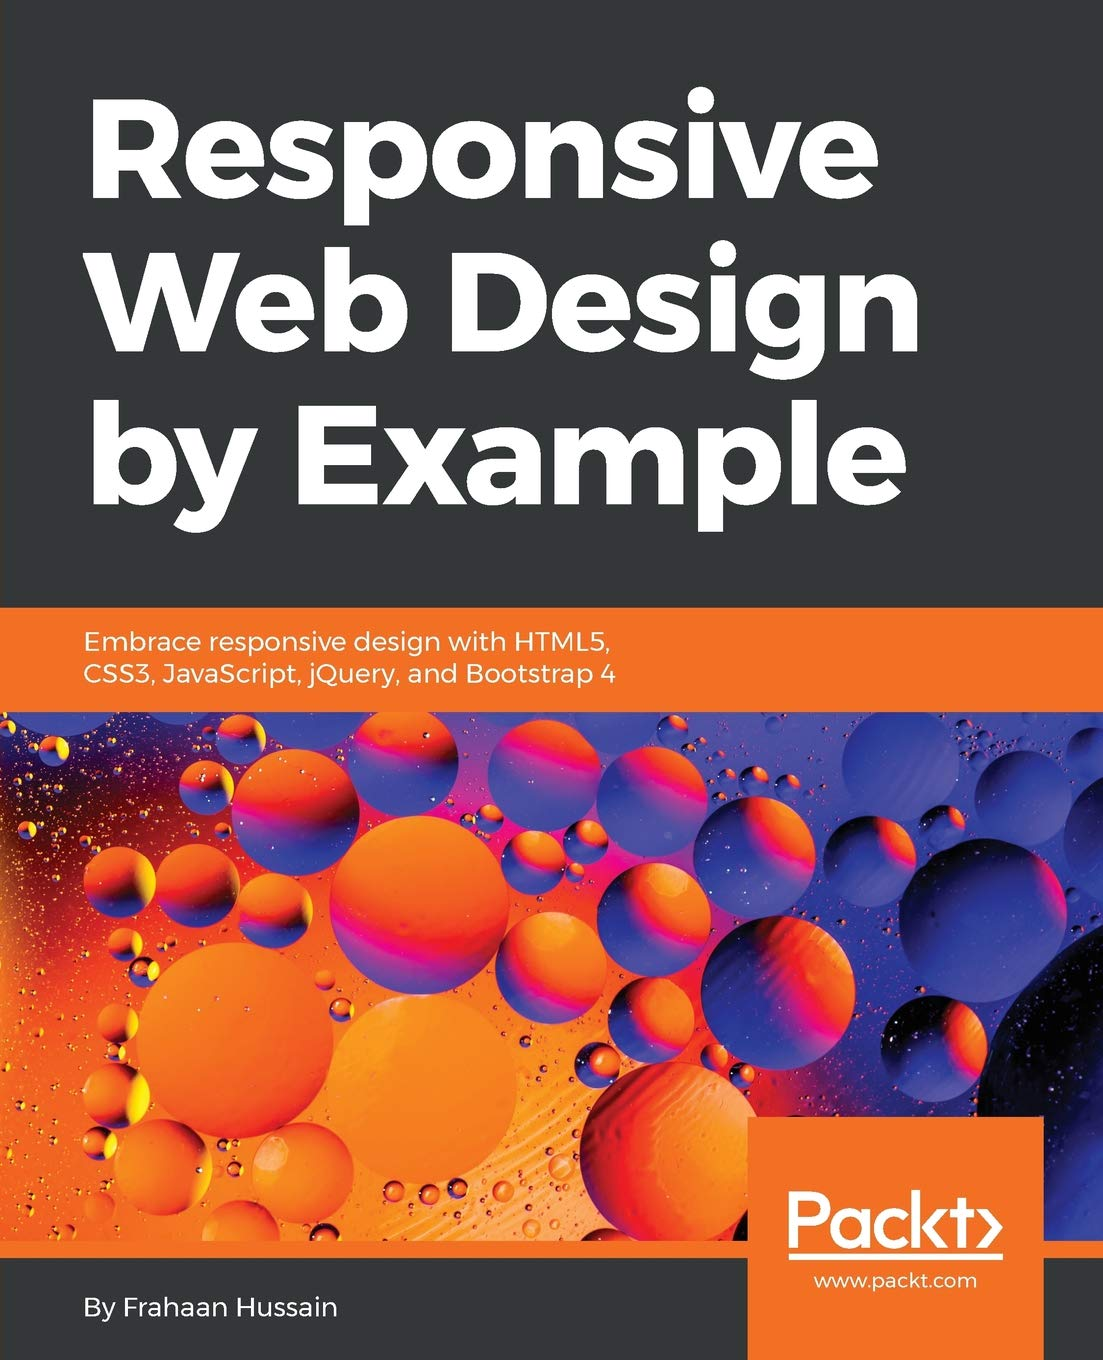 Responsive Web Design by Example: Embrace responsive design with HTML5, CSS3, JavaScript, jQuery and Bootstrap 4